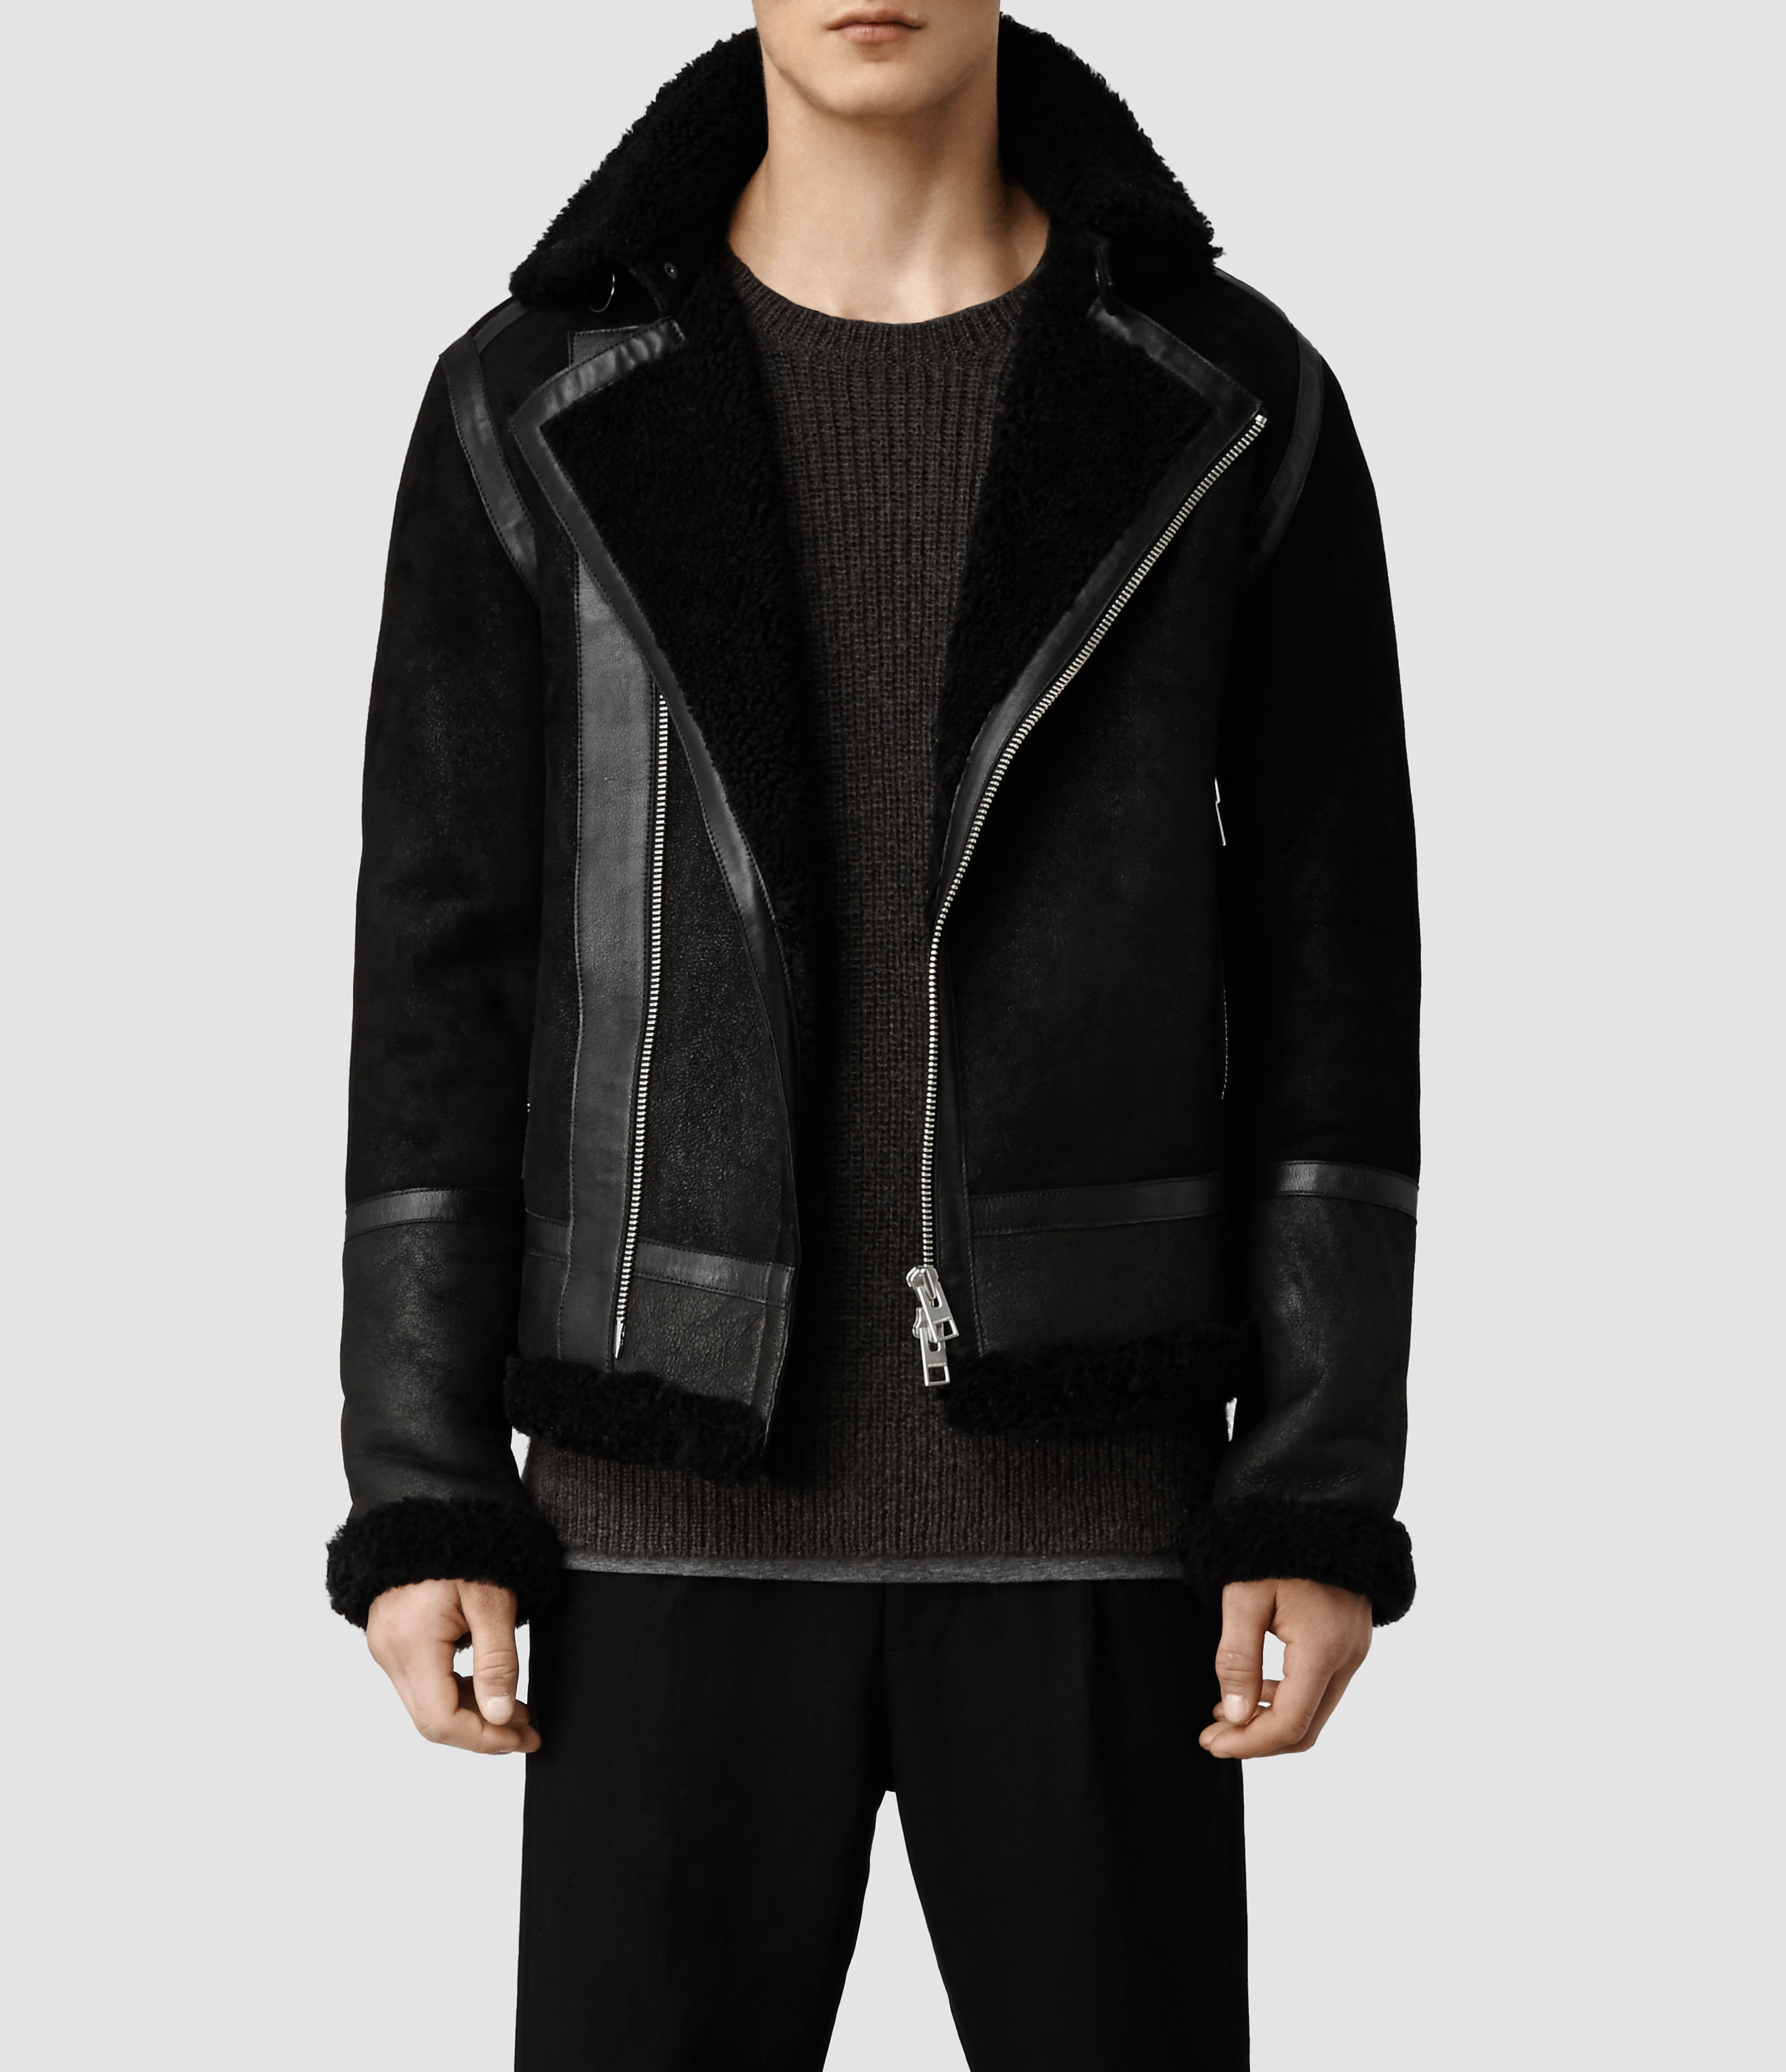 Allsaints Union Shearling Leather Jacket in Black for Men | Lyst